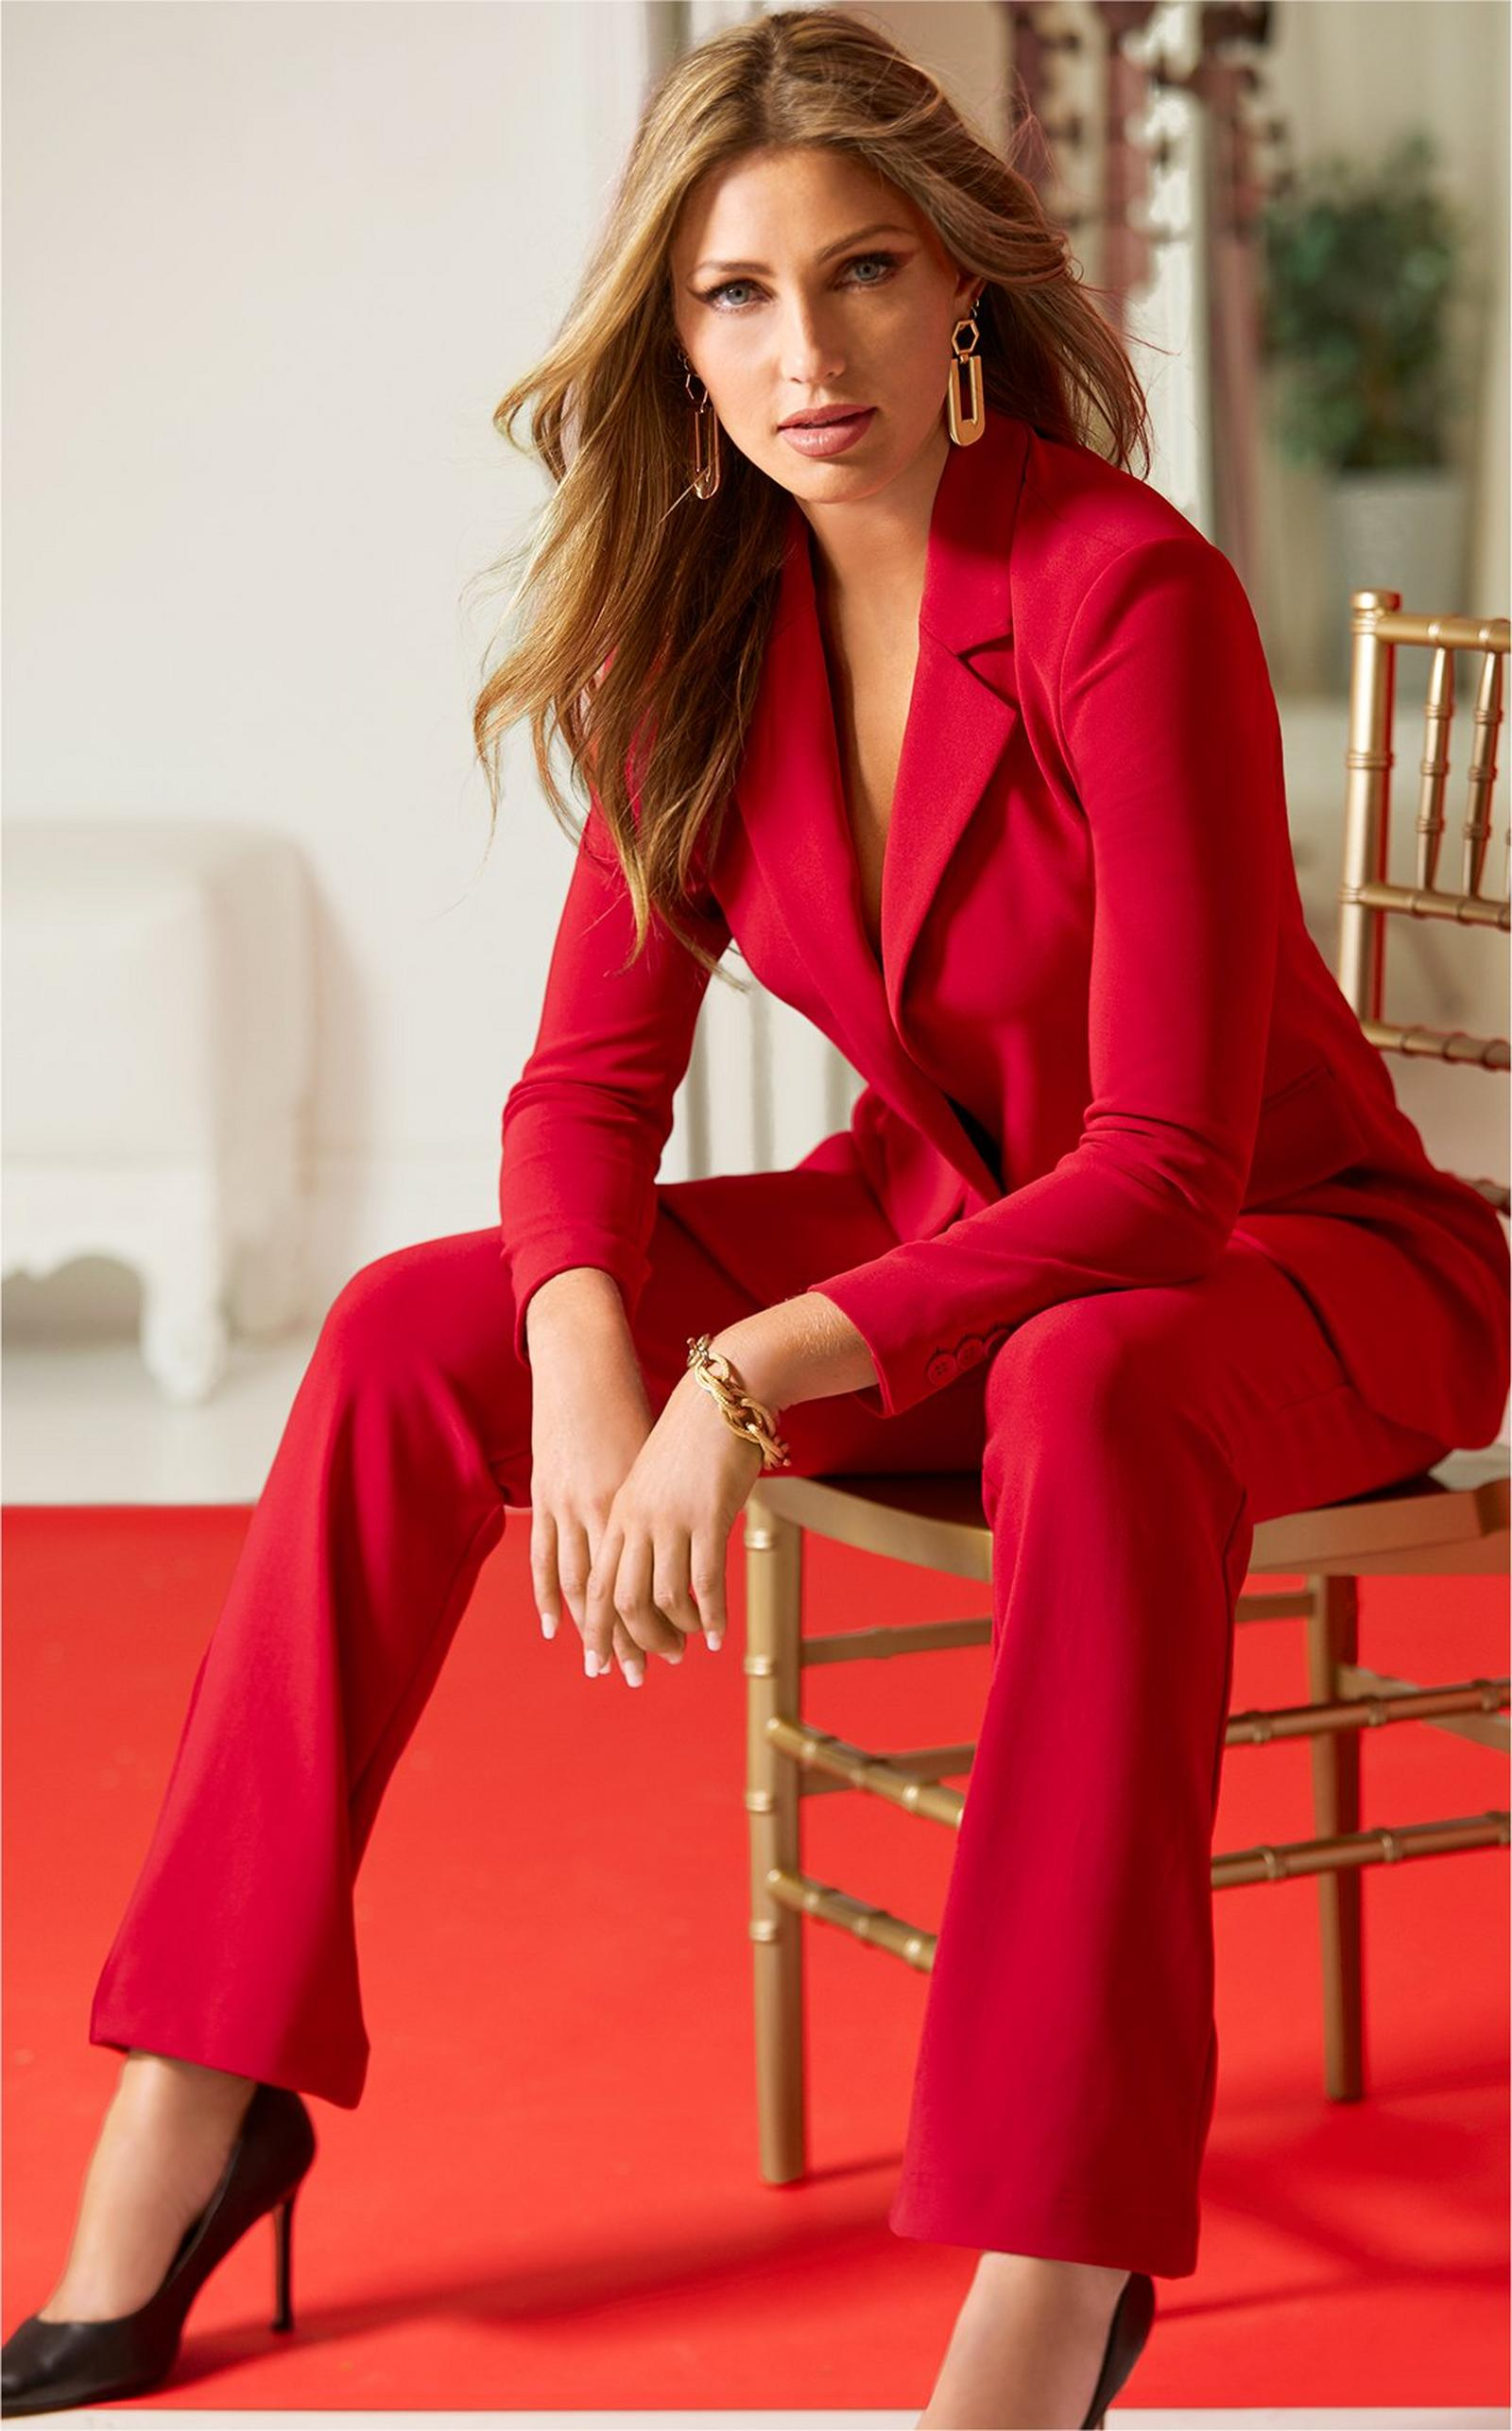 model sitting in a wooden chair wearing a red blazer and red travel pants with black pumps.